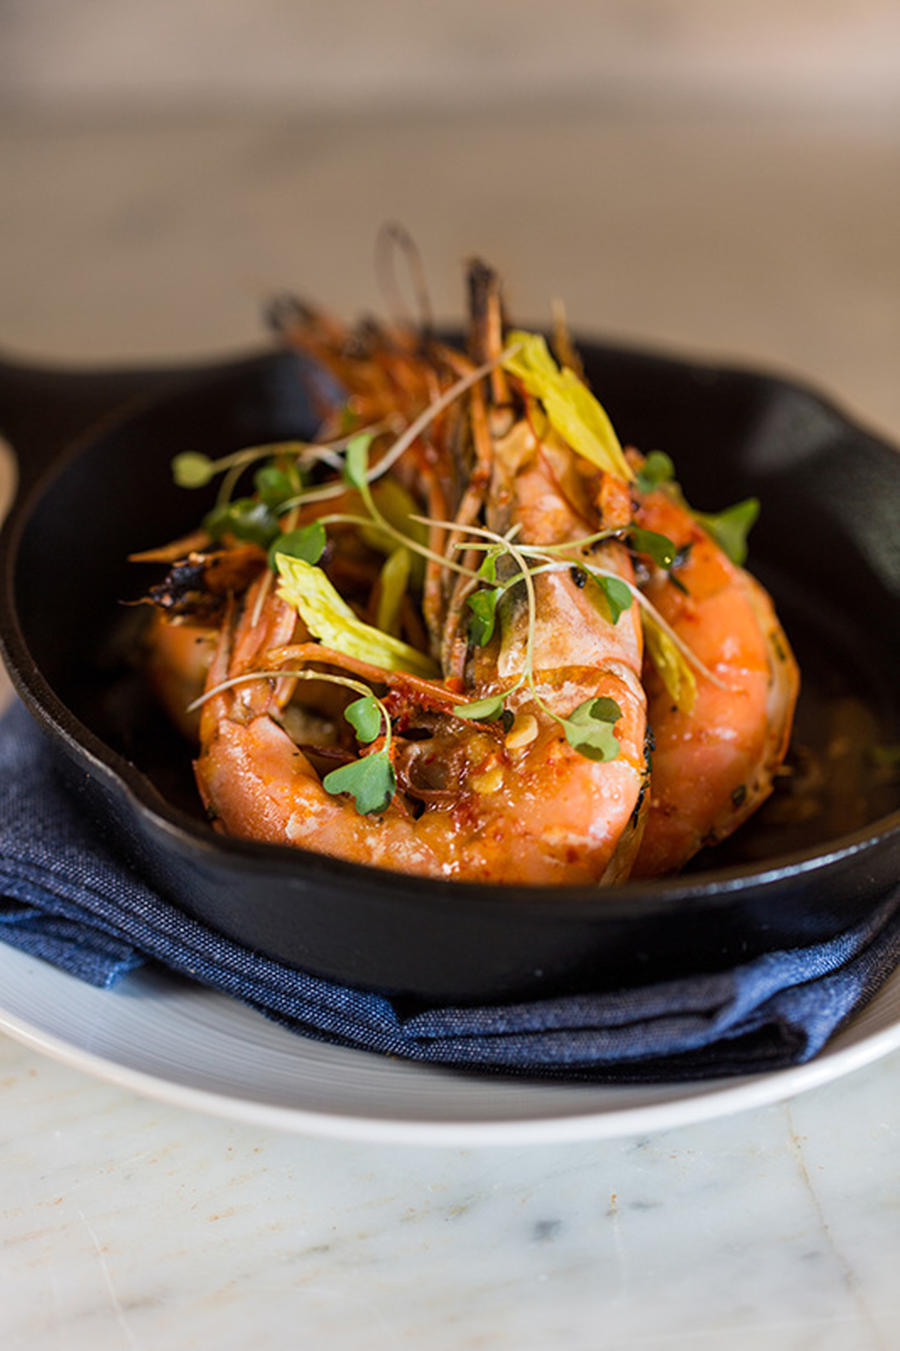 Compere-Lapin-Lousiana-Shrimp-avocado-jalapeno-jus-photo-credit-Sara-Essex-Bradley.jpg